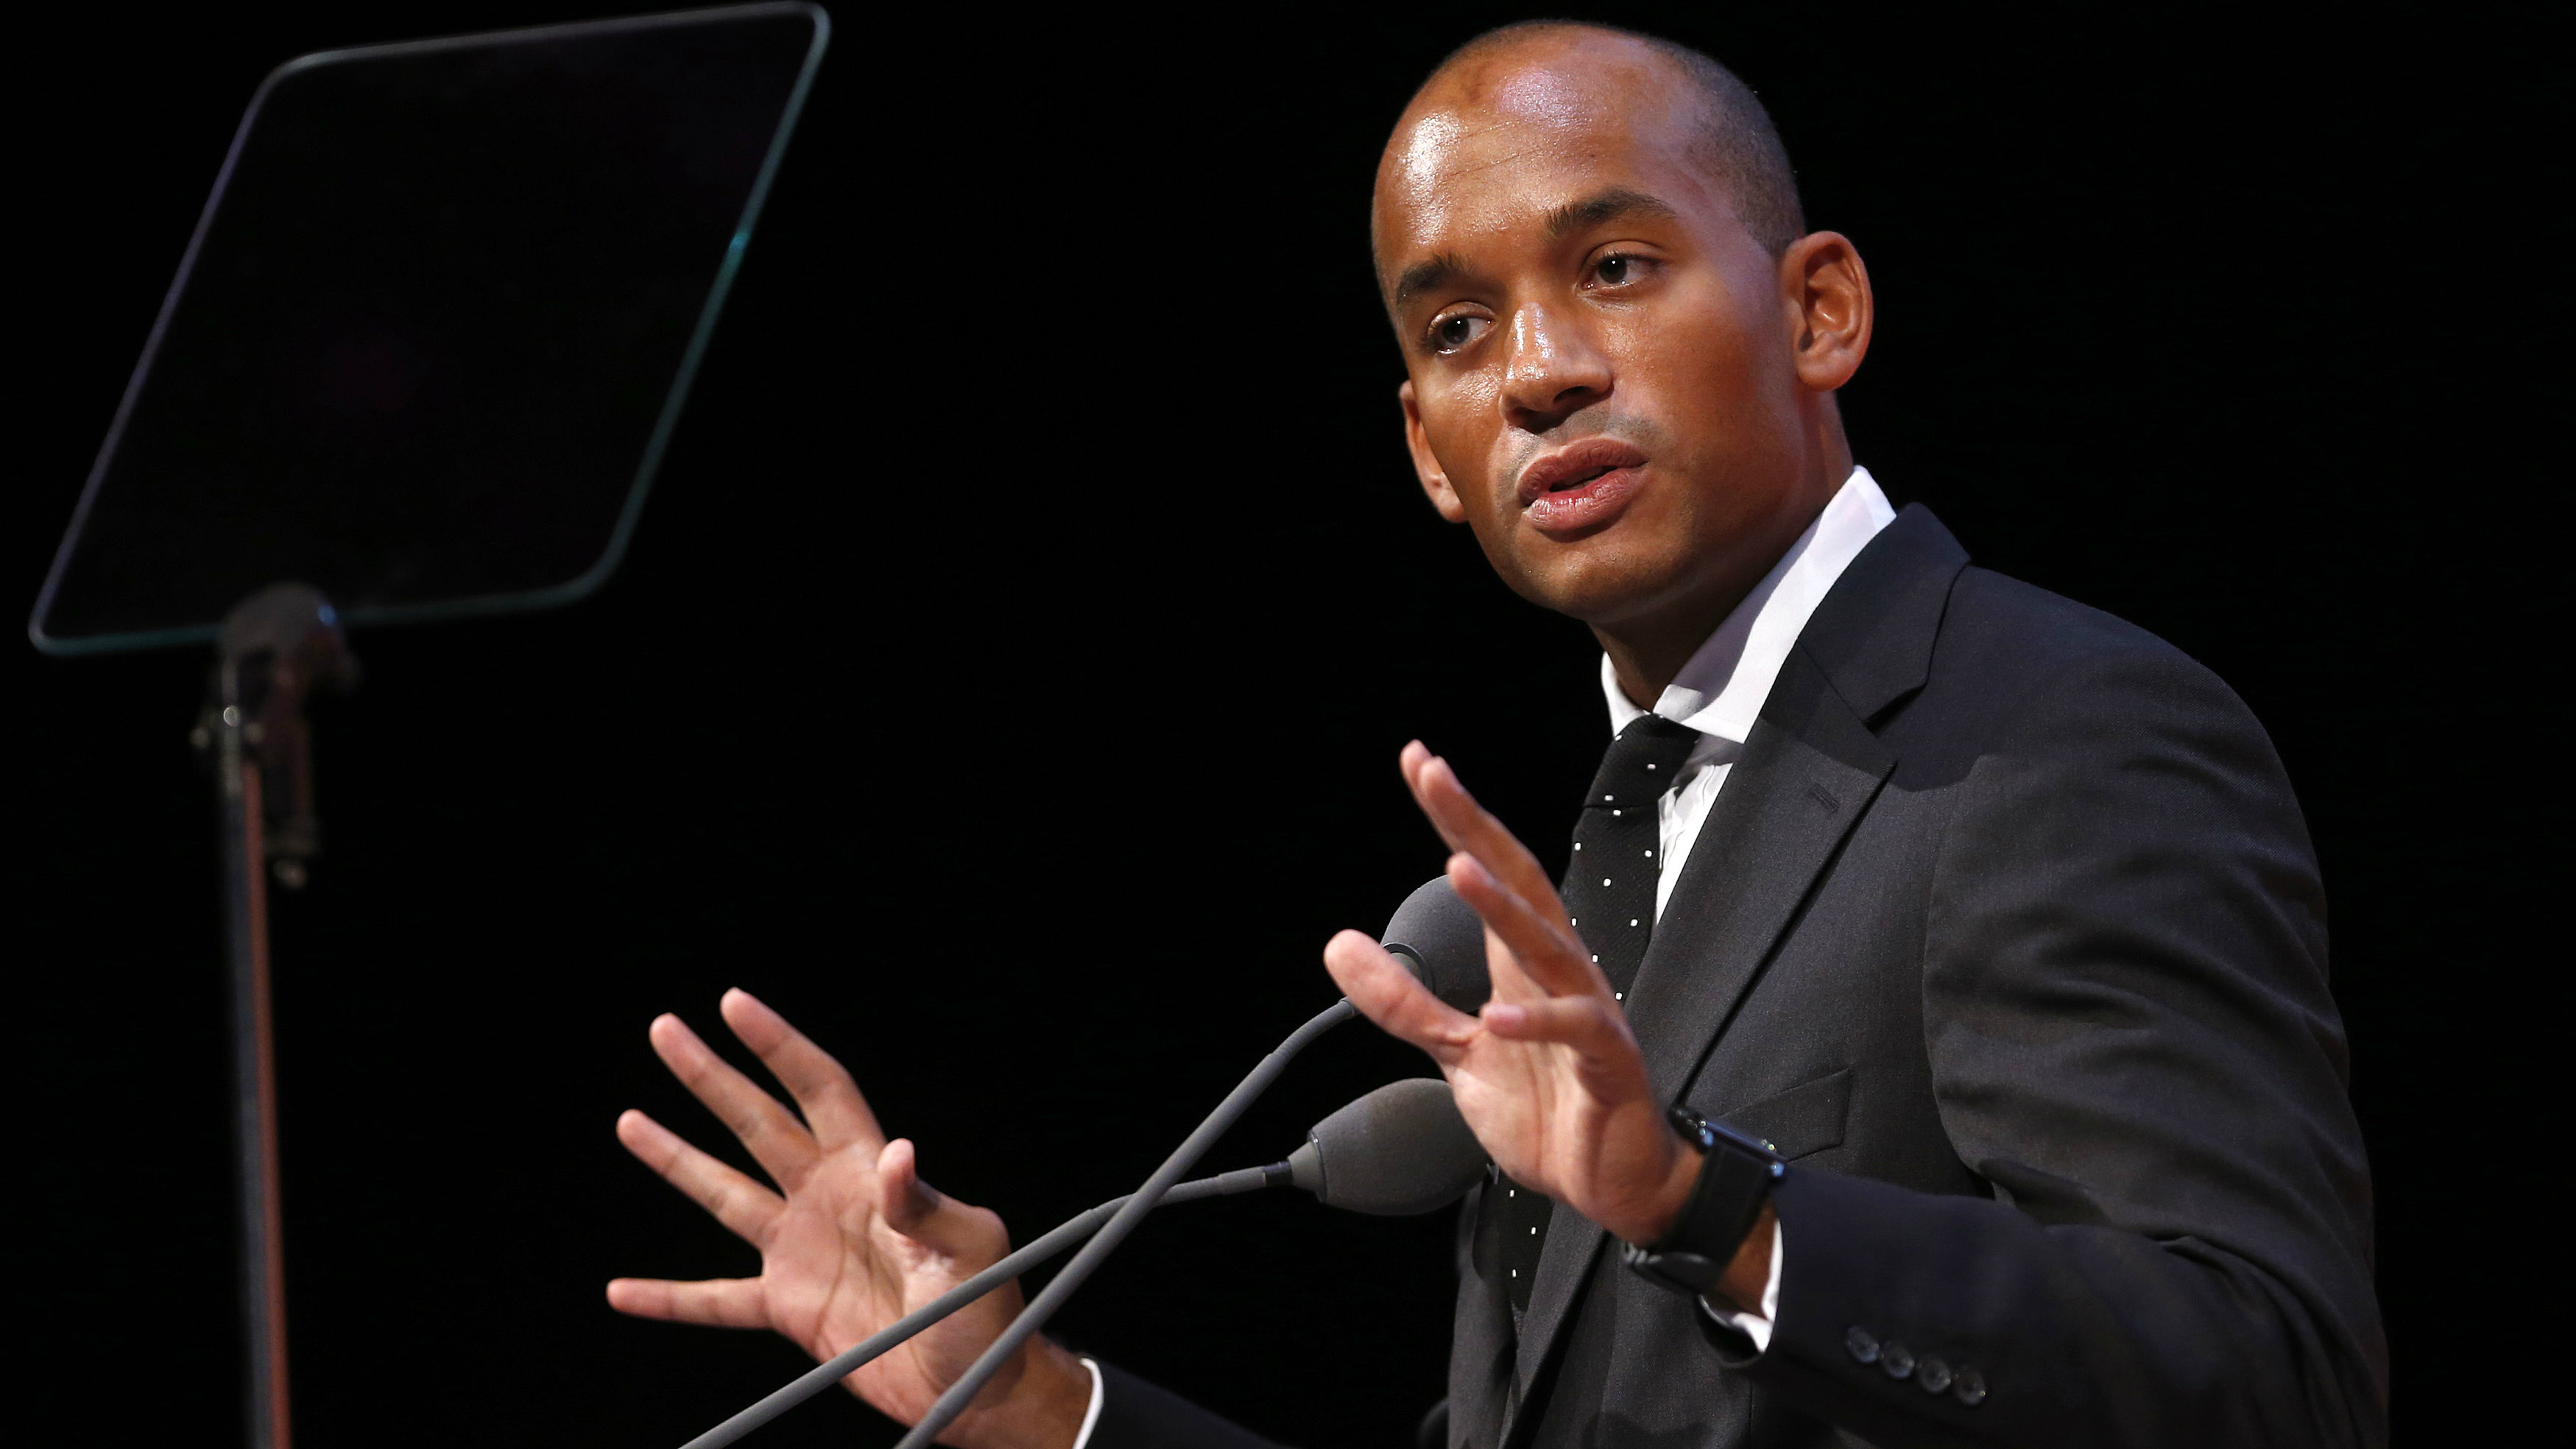 Britain's opposition Labour Party Business Secretary Chuka Umunna speaks at the Institute of Directors annual convention in London September 18, 2013. REUTERS/Suzanne Plunkett (BRITAIN - Tags: BUSINESS POLITICS)